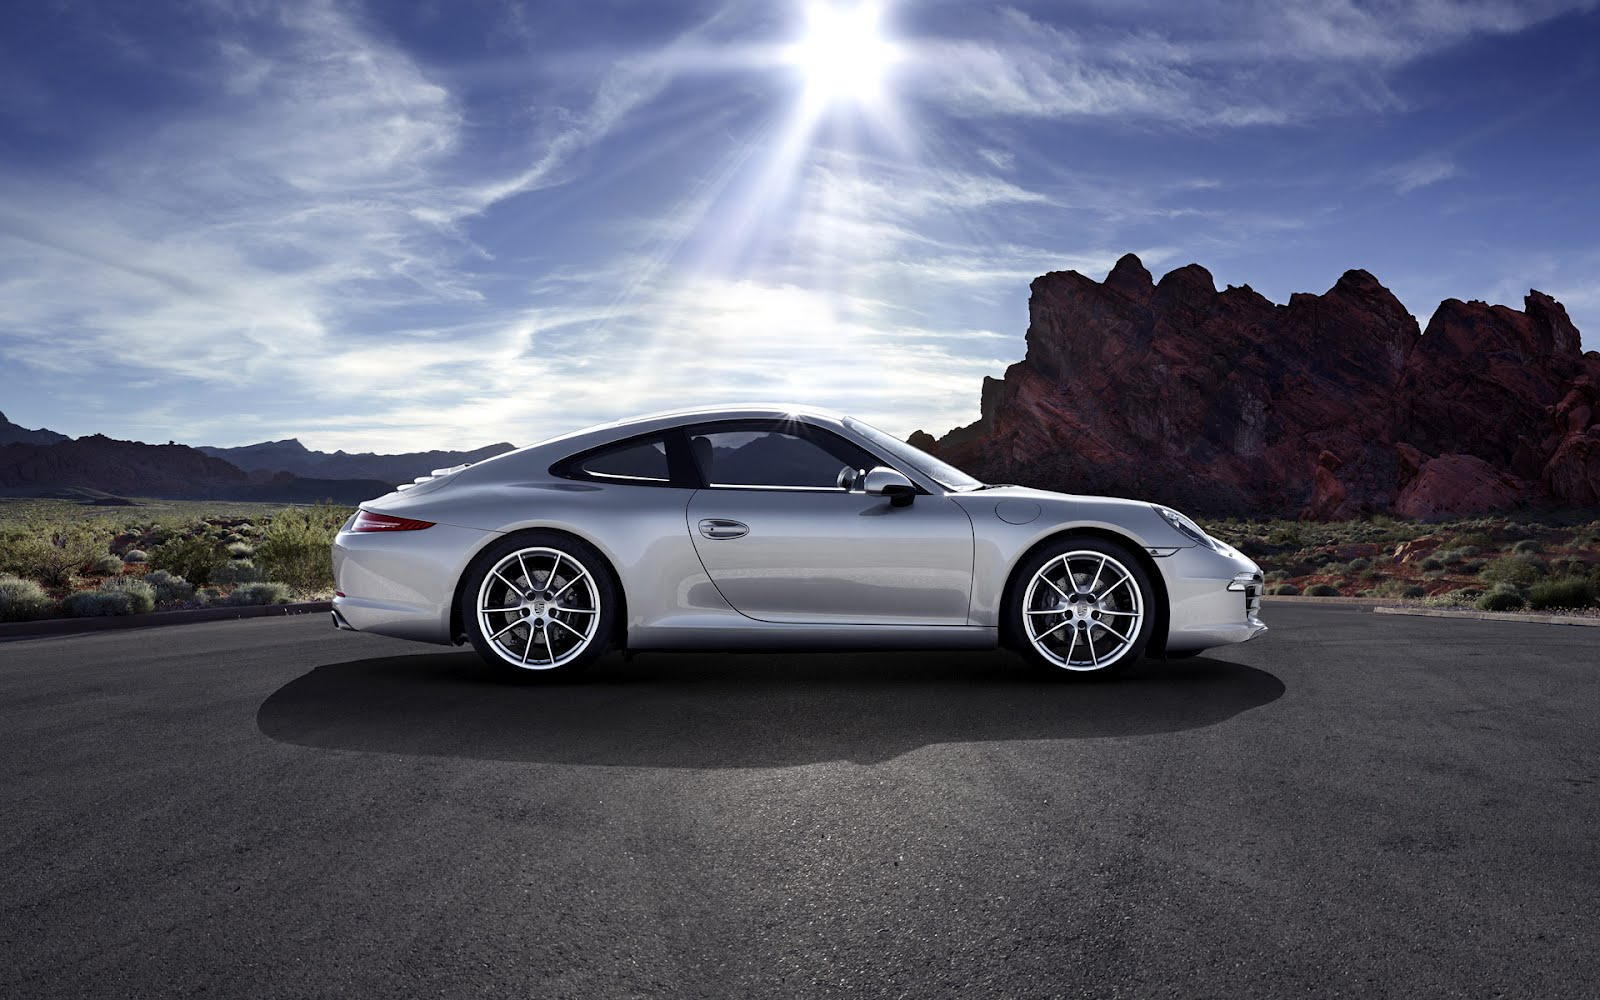 Porsche hd wallpapers Porsche hd wallpaper Porsche 911 hd wallpapers 1600x1000